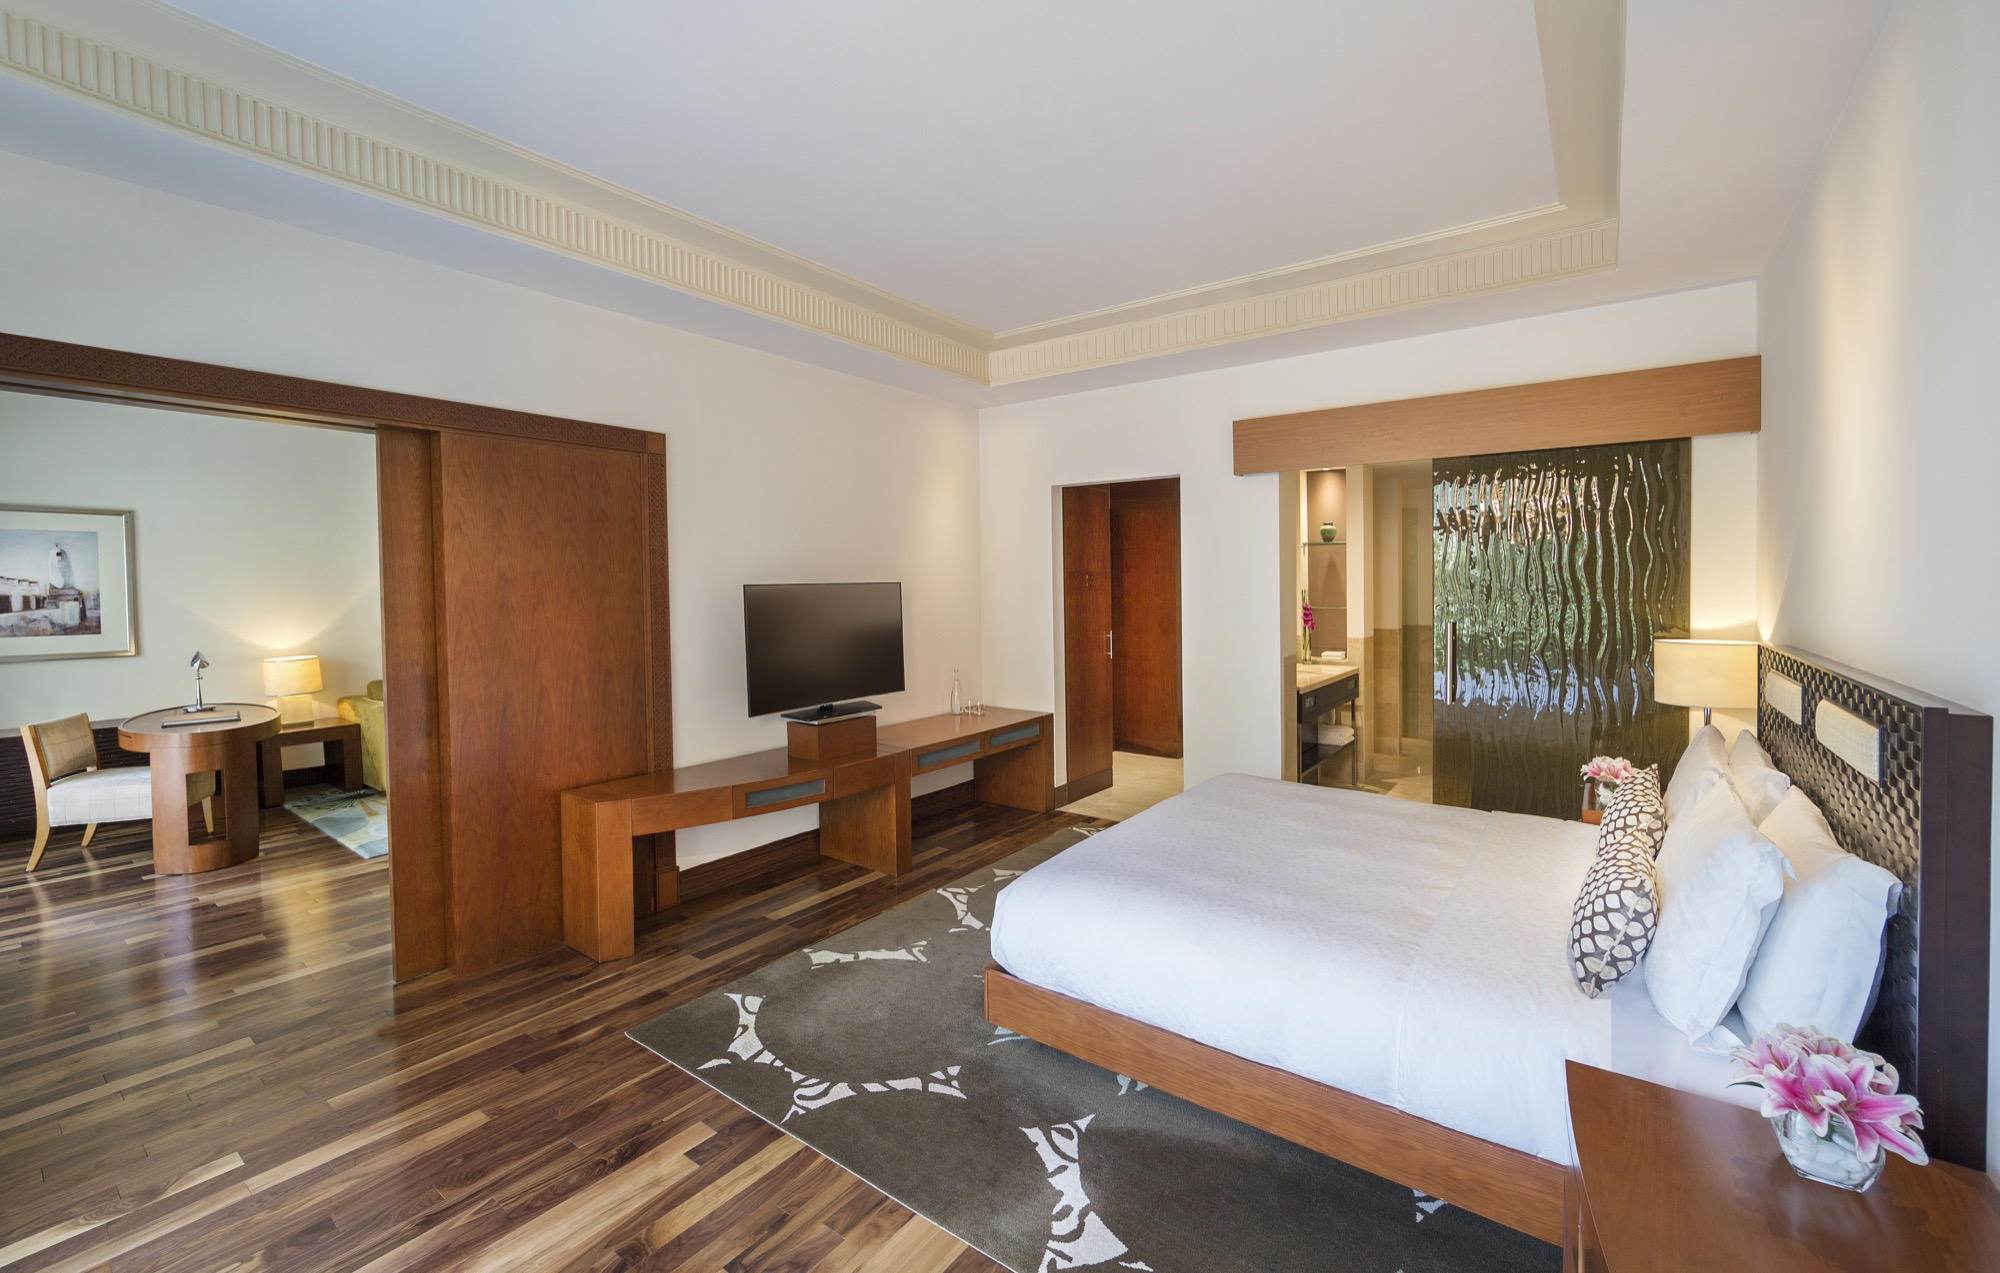 Hyatt-Grand-Doha-Grand-Suite-Living-Room-Bedroom-119.jpeg.jpg